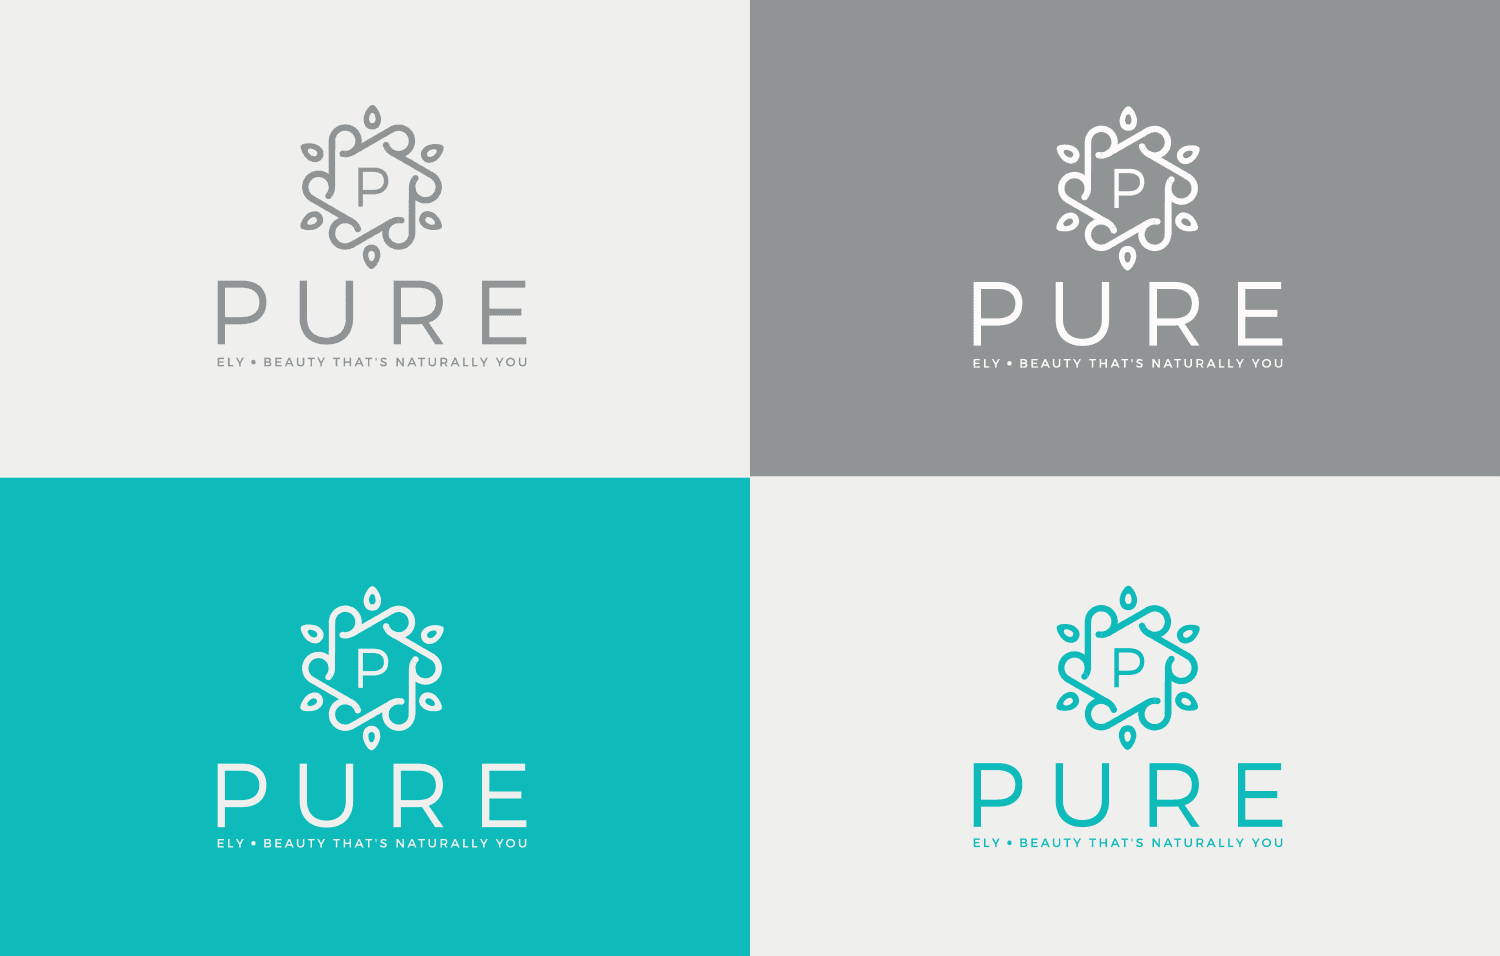 Pure Ely logo 4 way